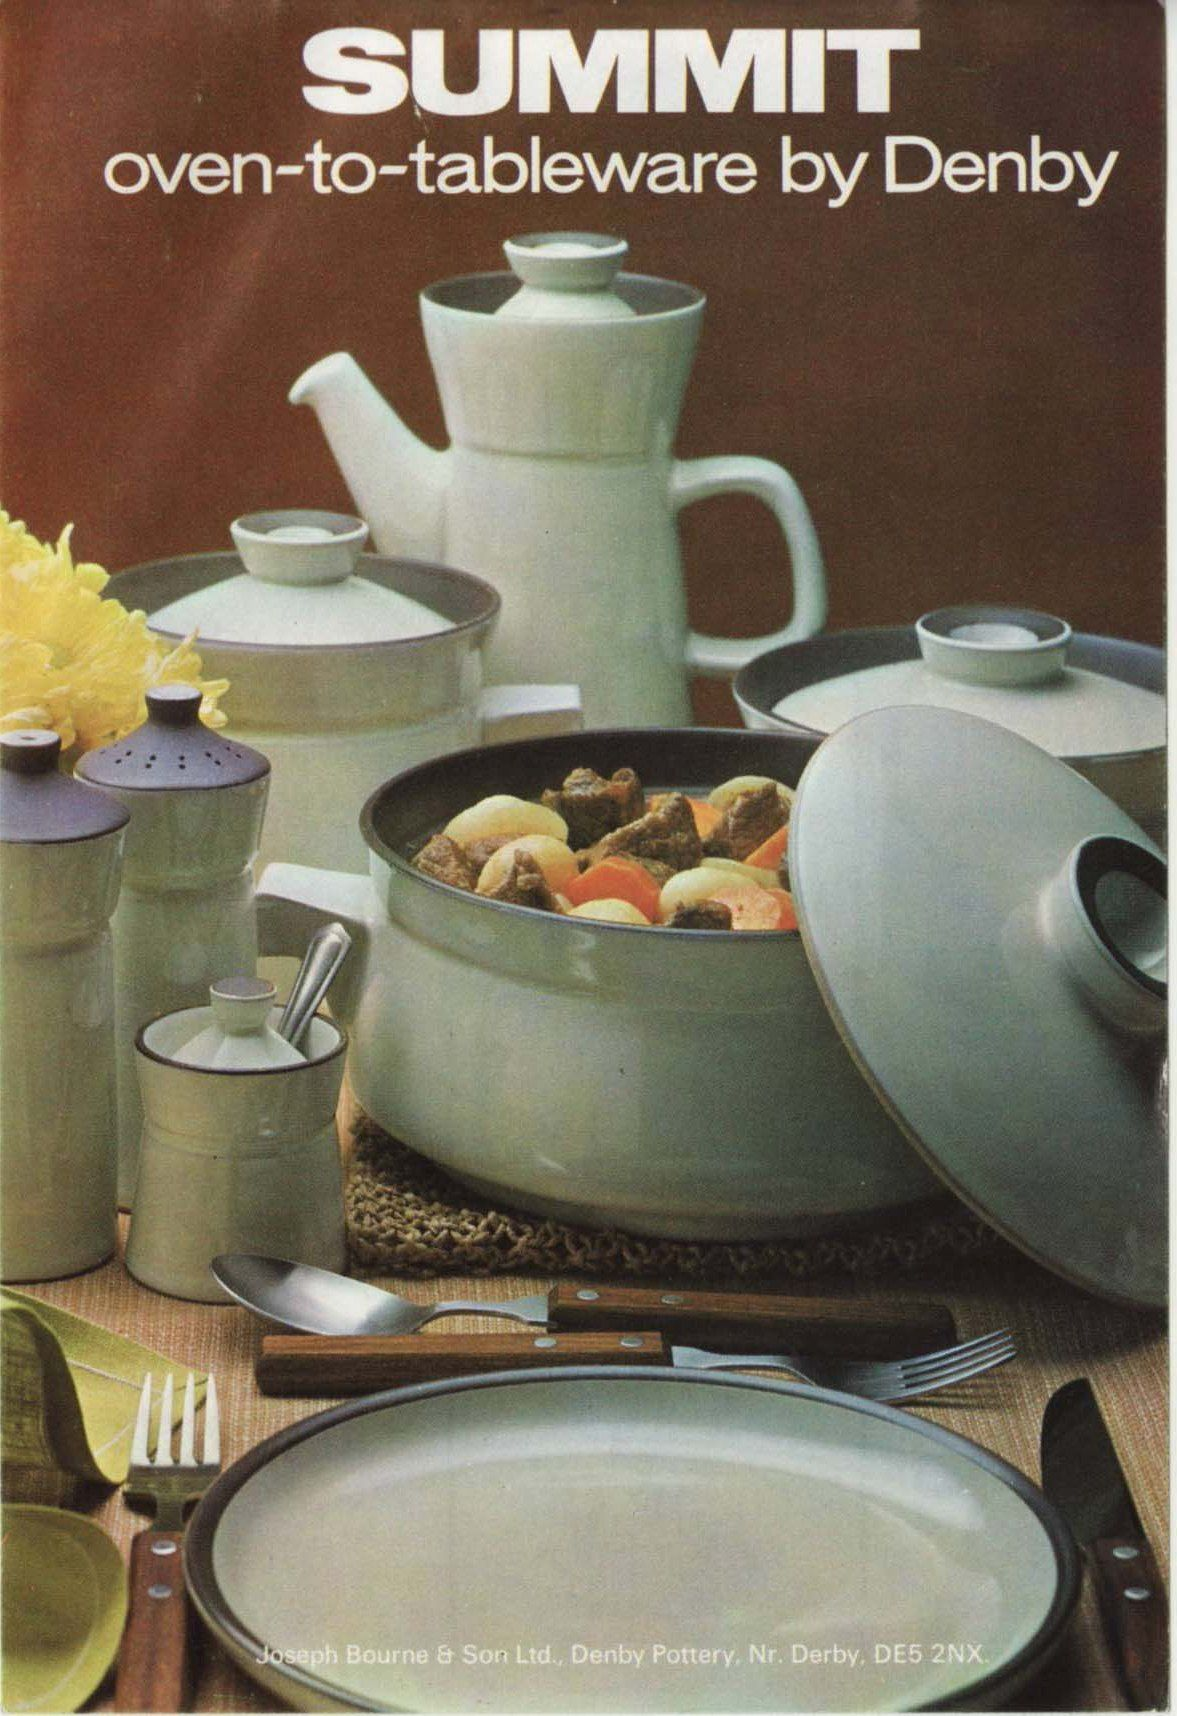 Momu0027s old wedding china looking for replacement pieces especially bowls and salad plates & Denby. Summit. 1969.: Momu0027s old wedding china looking for ...